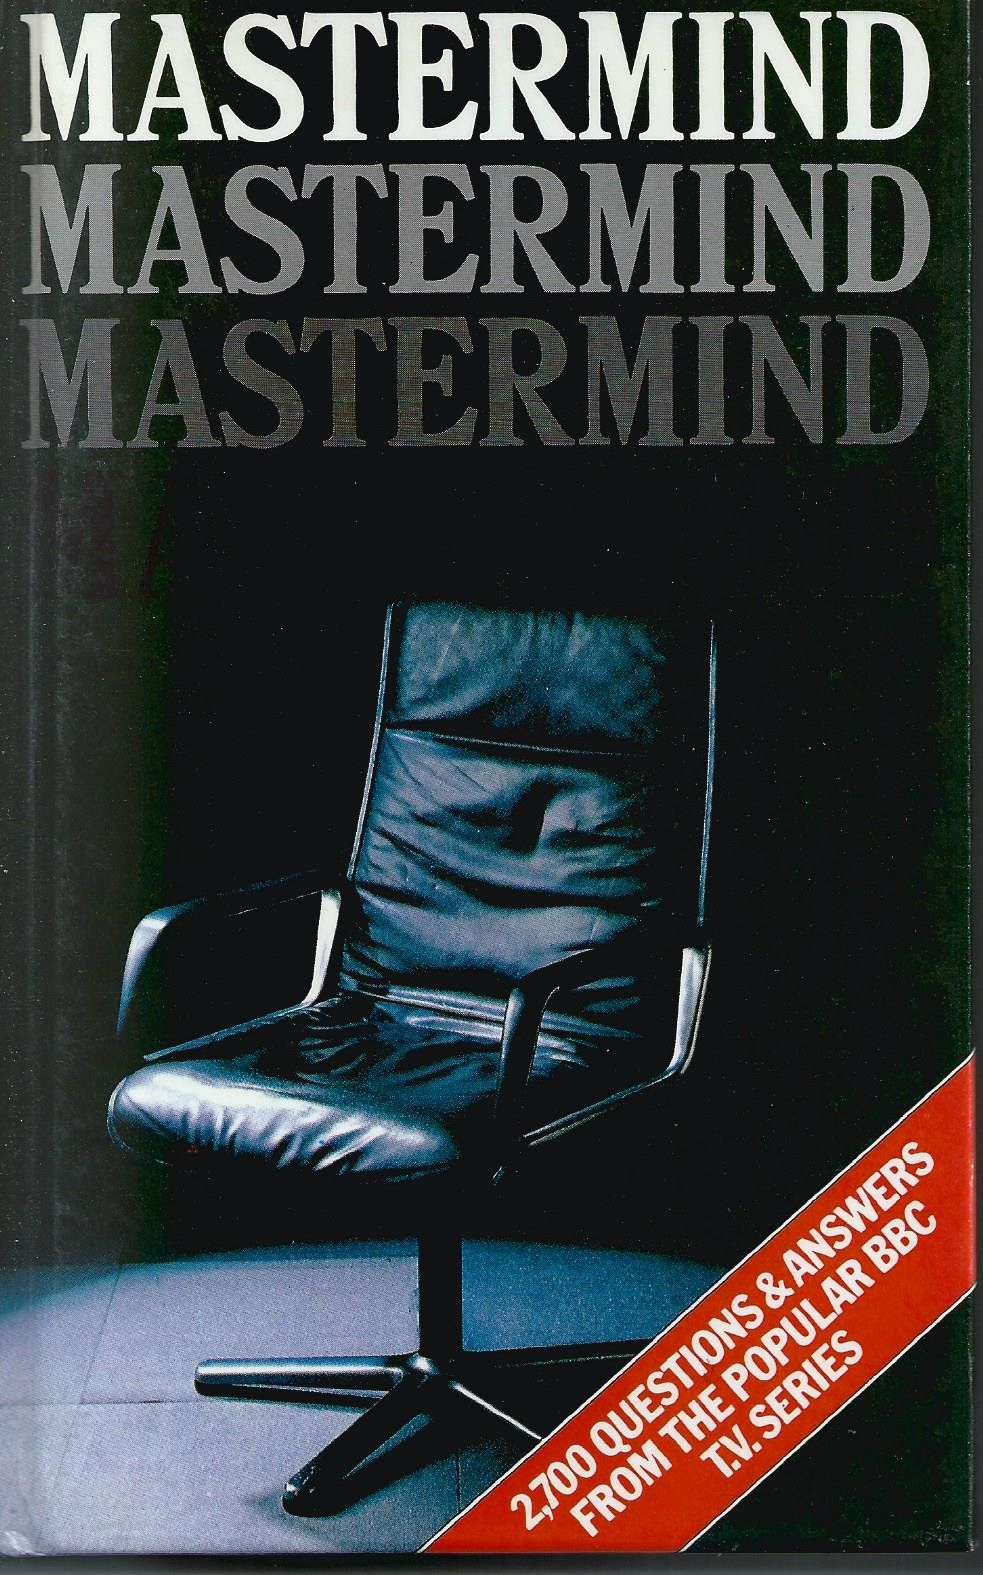 Mastermind Over 2,700 Questions and Answers from the